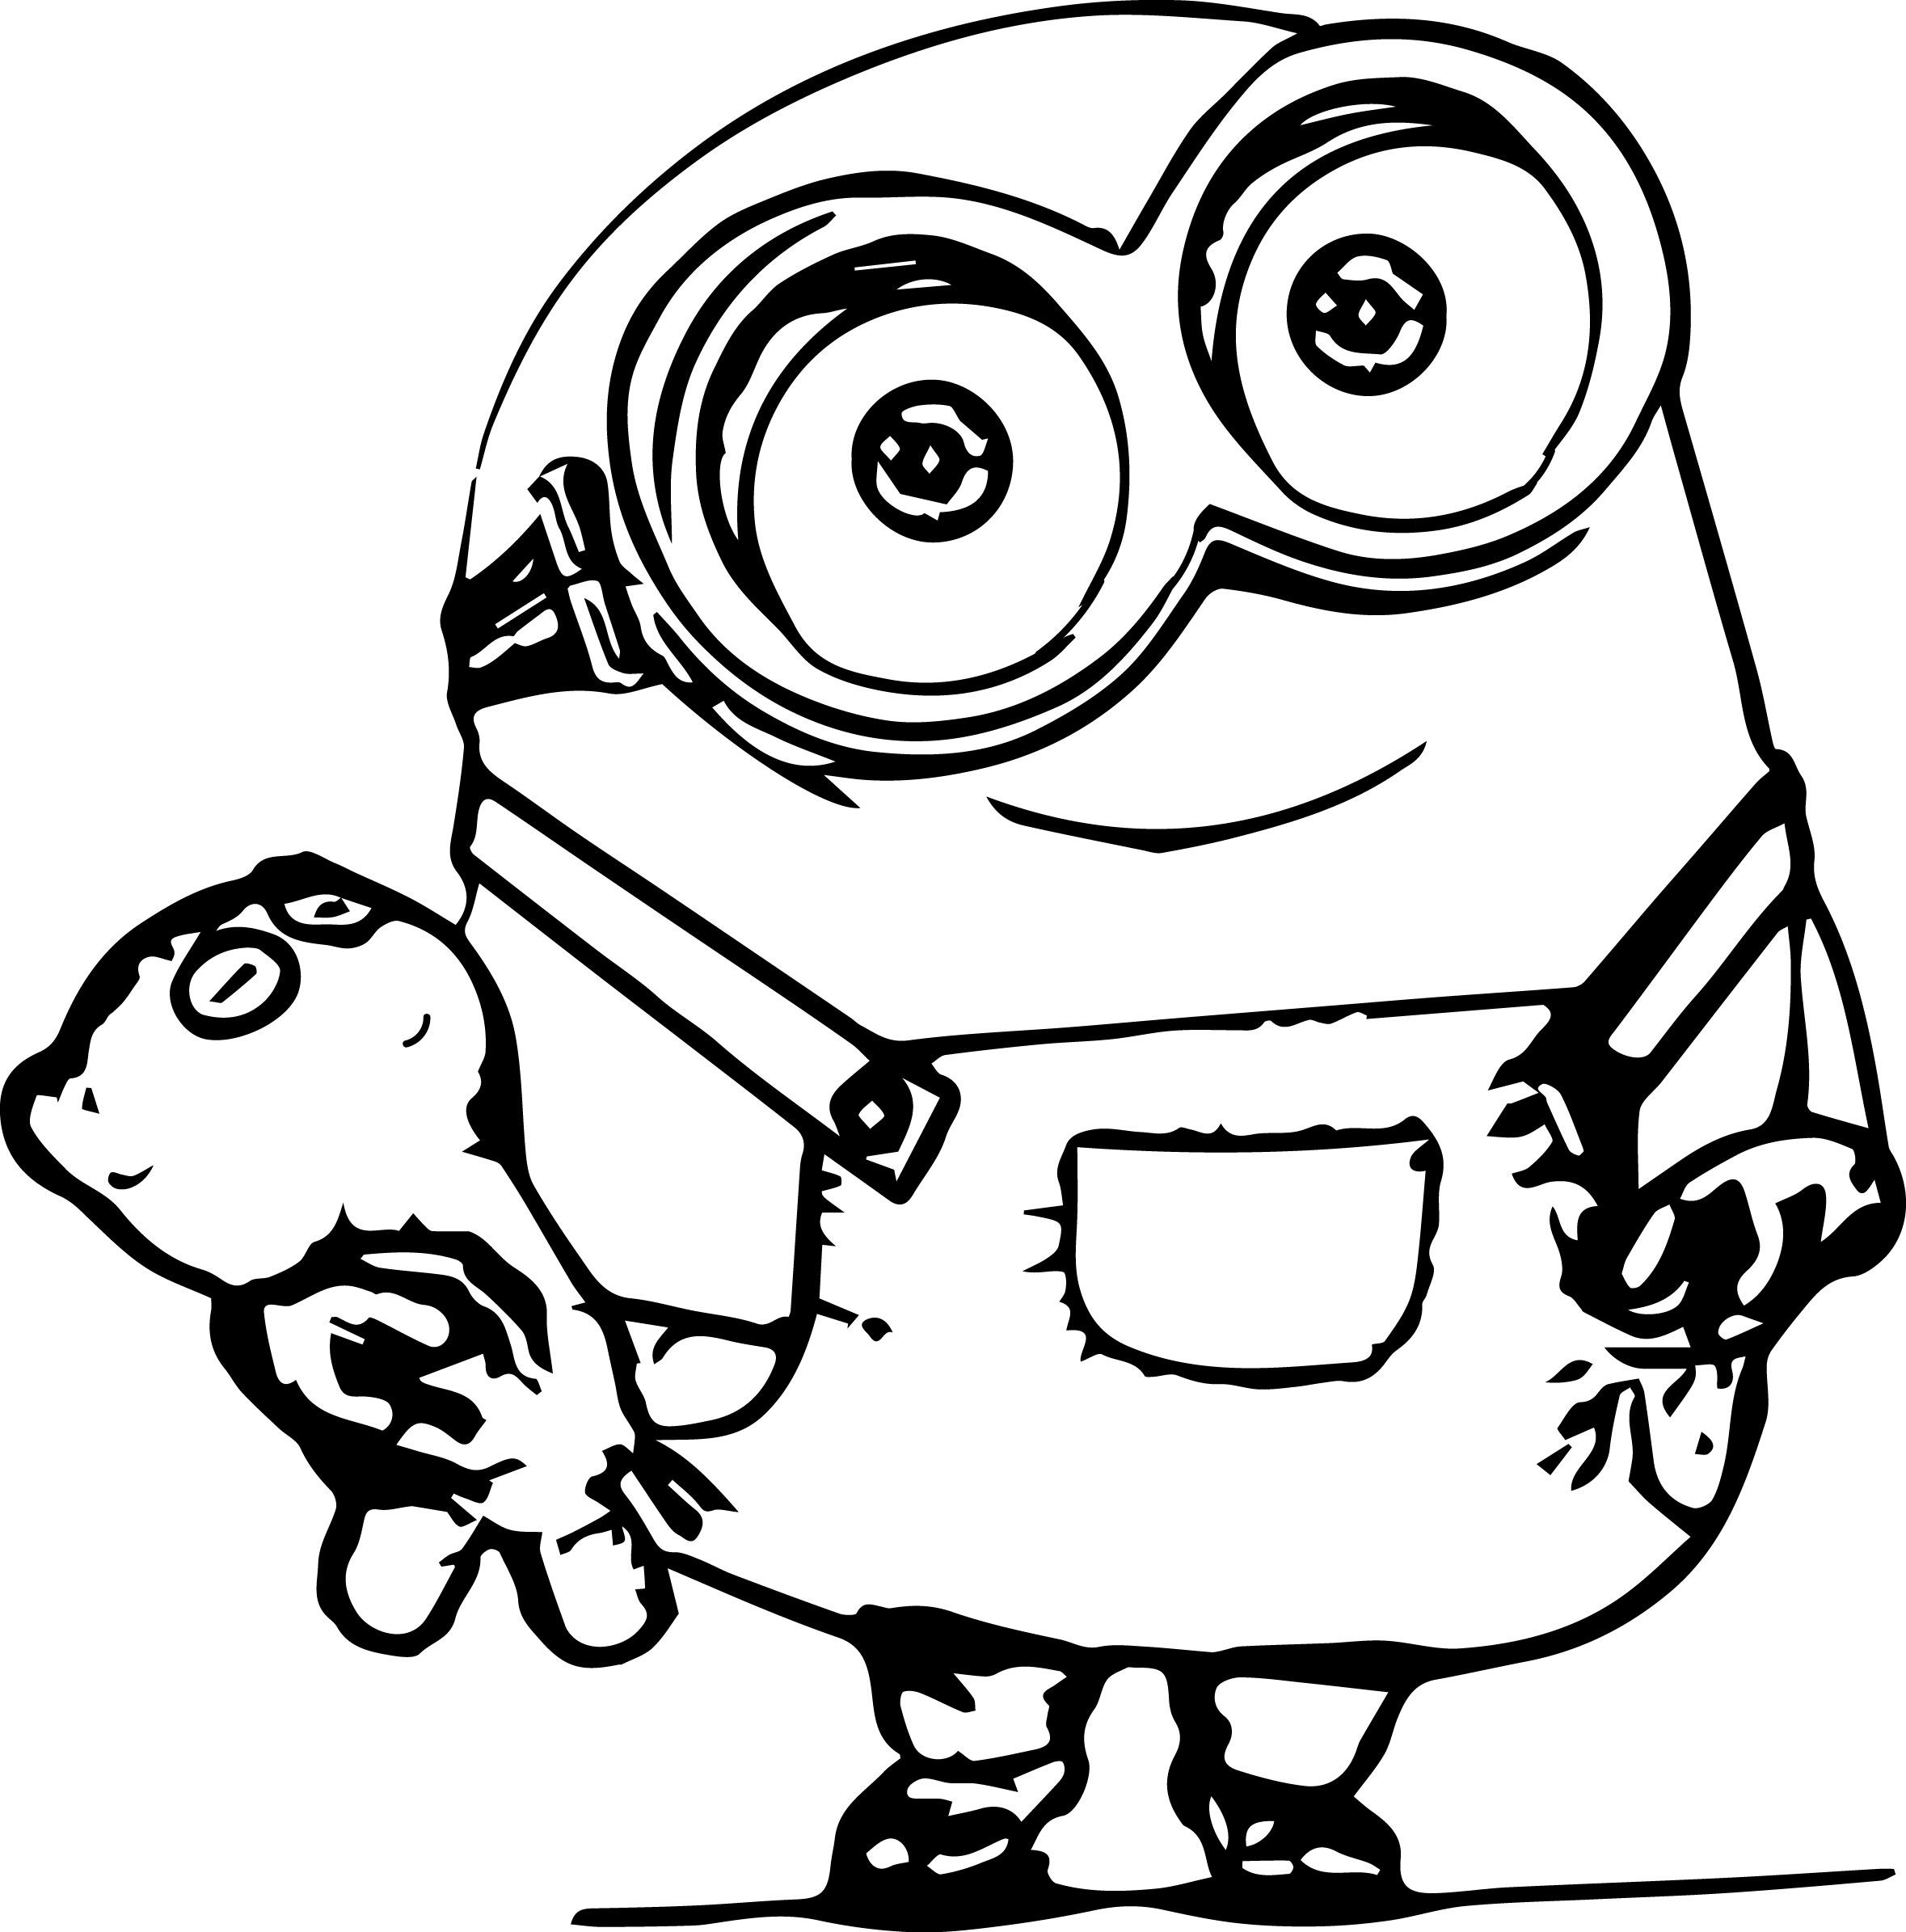 awesome minions coloring pages - Couloring Sheets